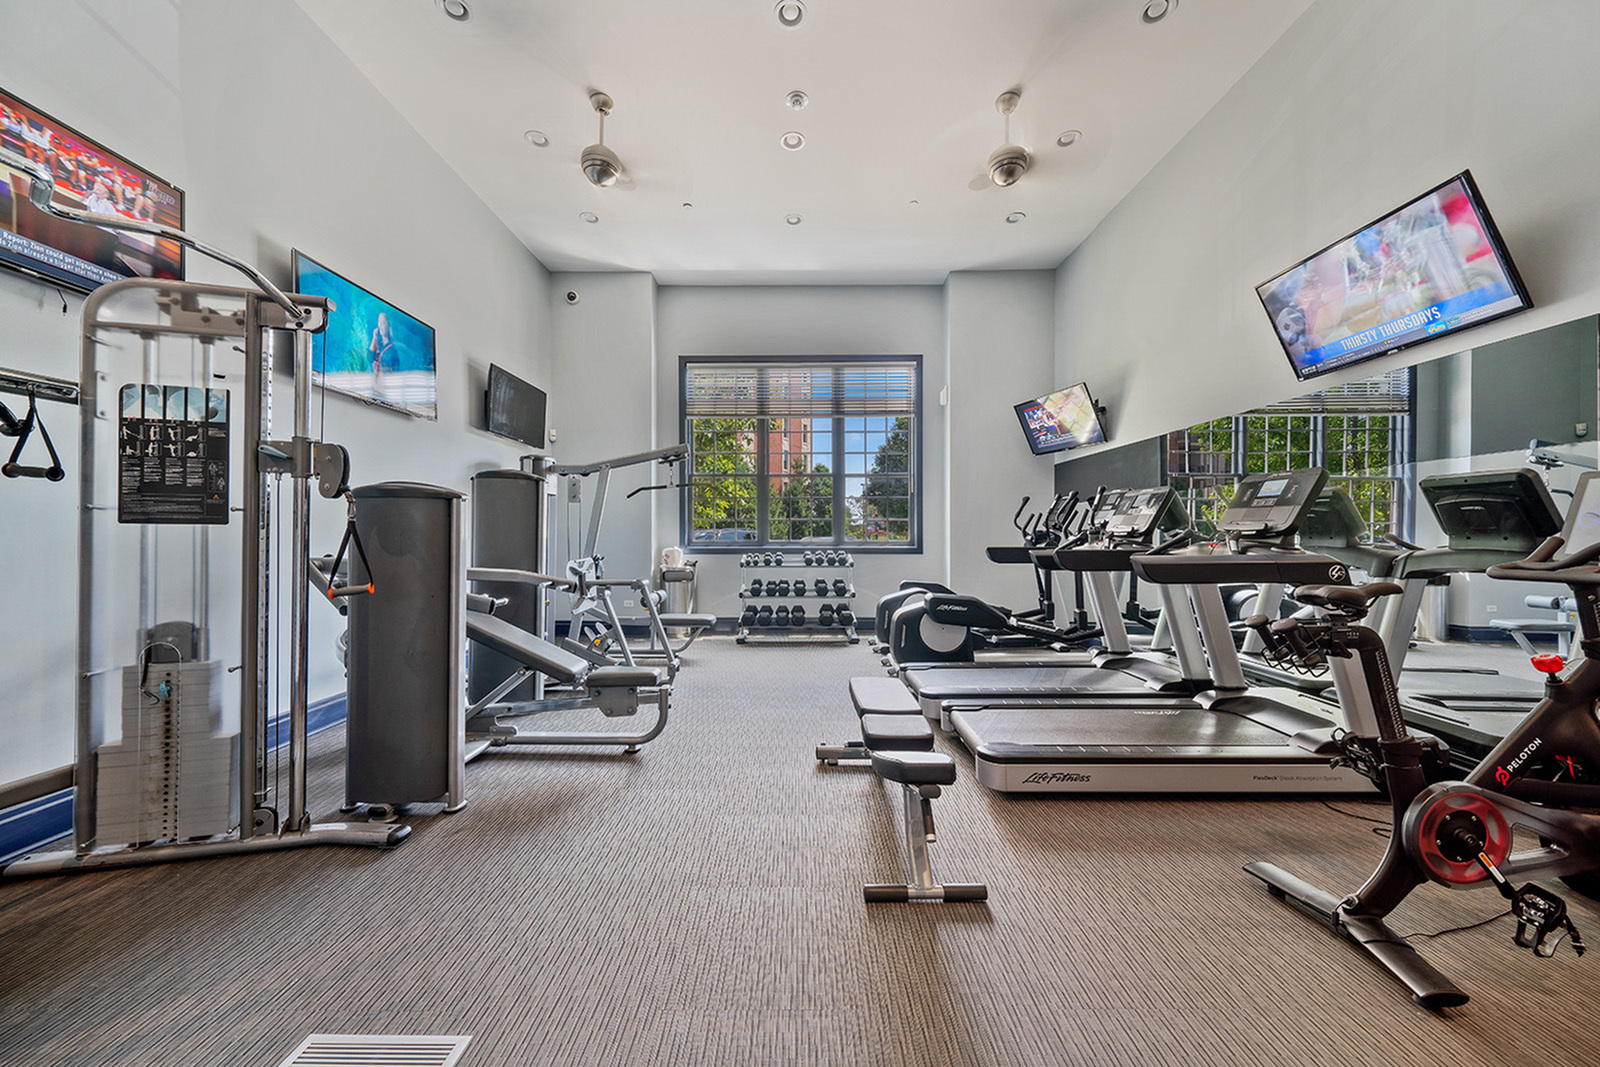 Image of Fitness Center for ReNew Downers Grove